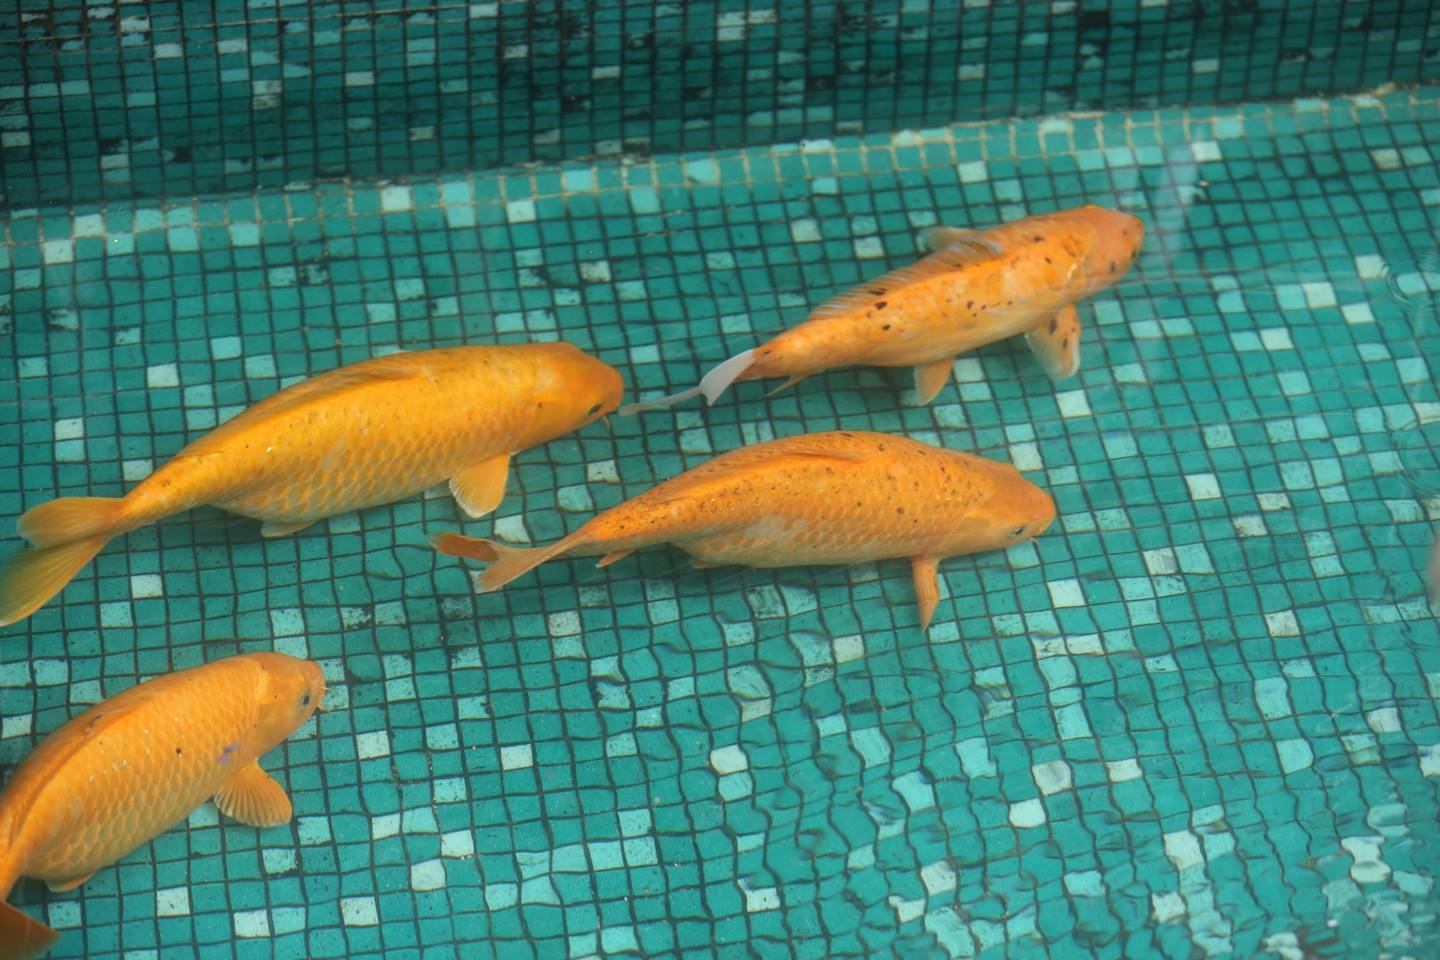 4 Golden fishes swimming at a restaurant in Bangalore